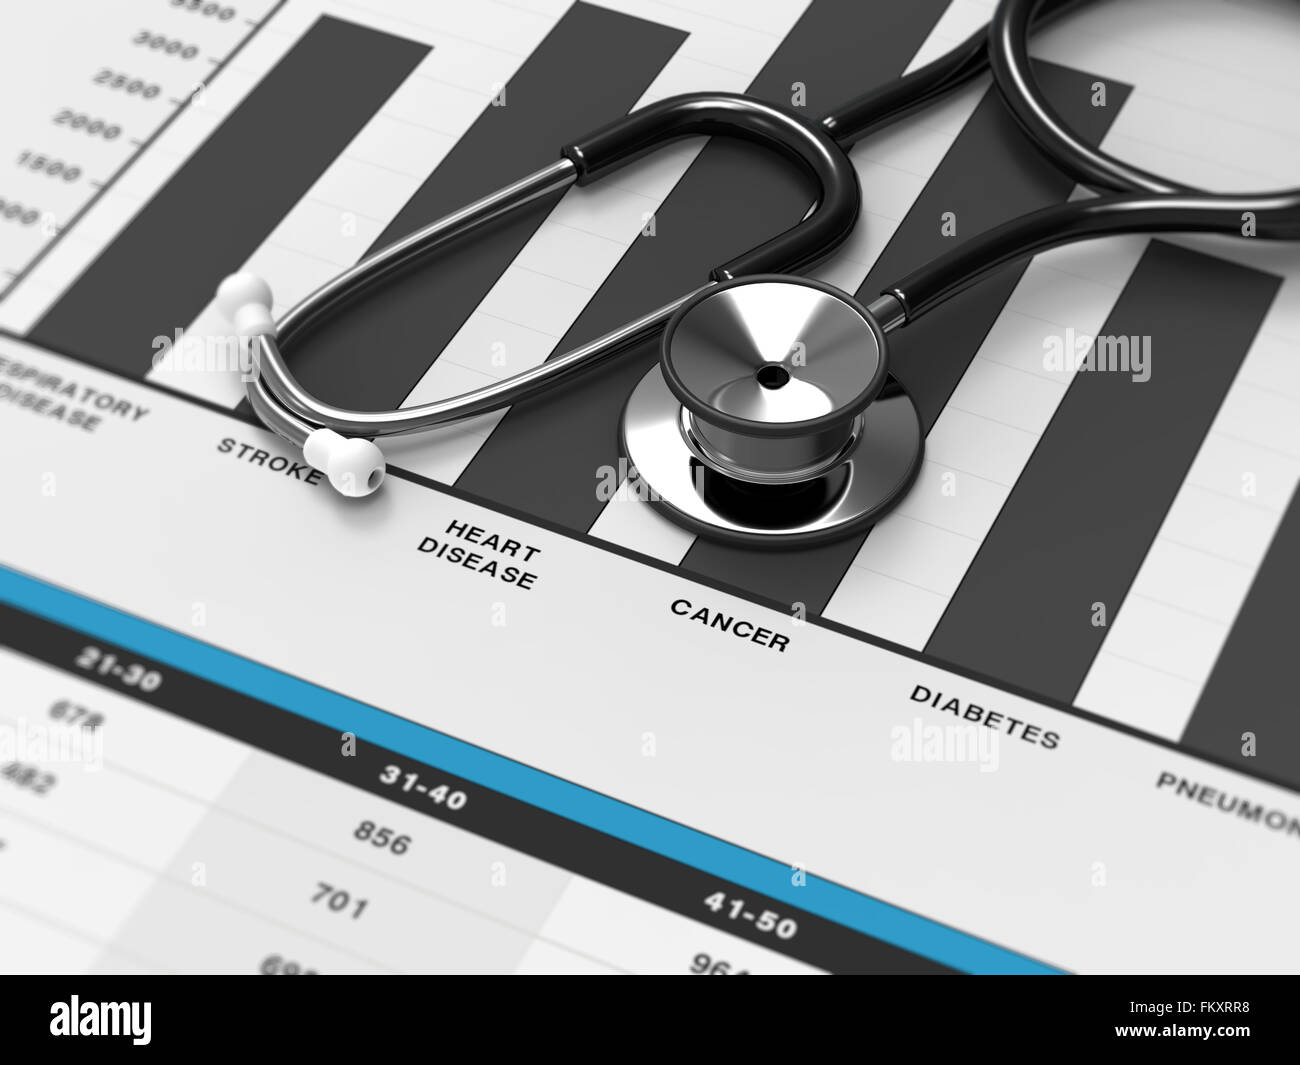 Stethoscope, chart, diseases, medical, insurance - Stock Image